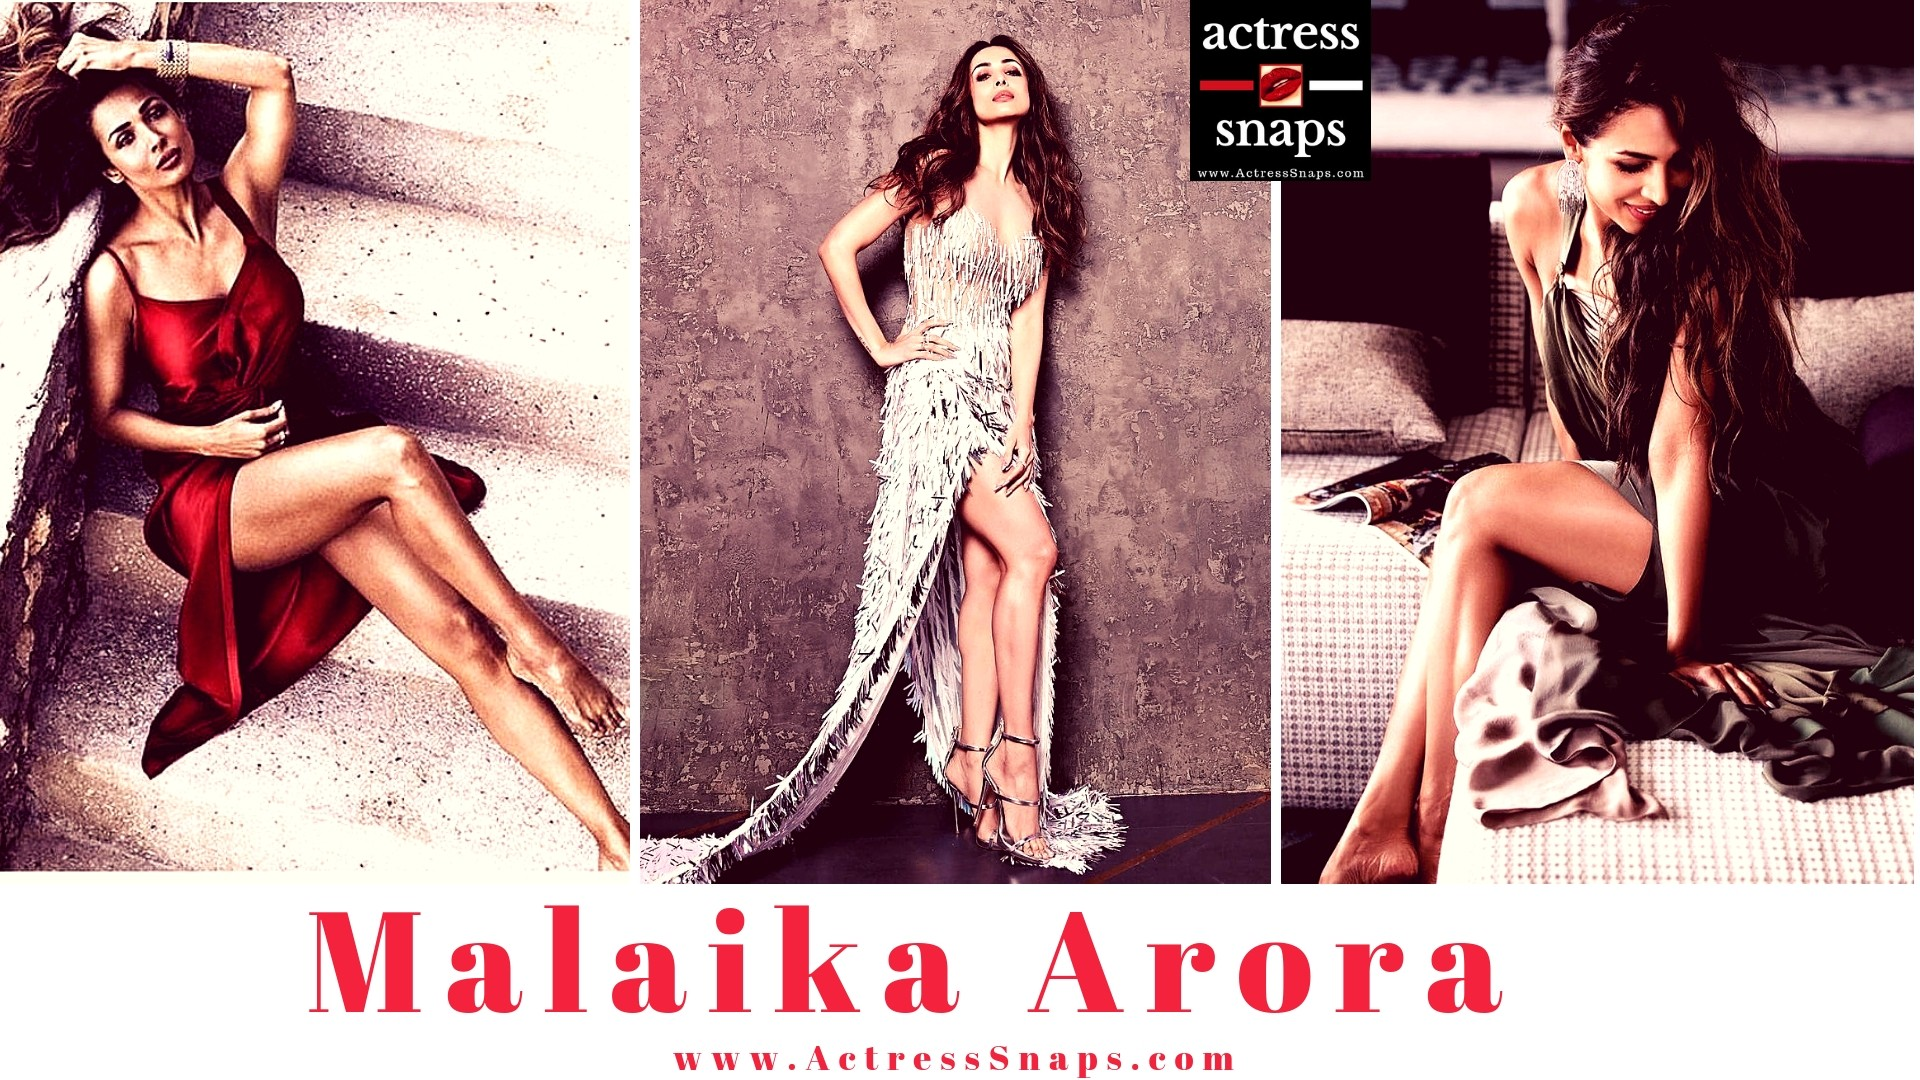 Malaika Arora Photos - Sexy Leg Show - Sexy Actress Pictures | Hot Actress Pictures - ActressSnaps.com